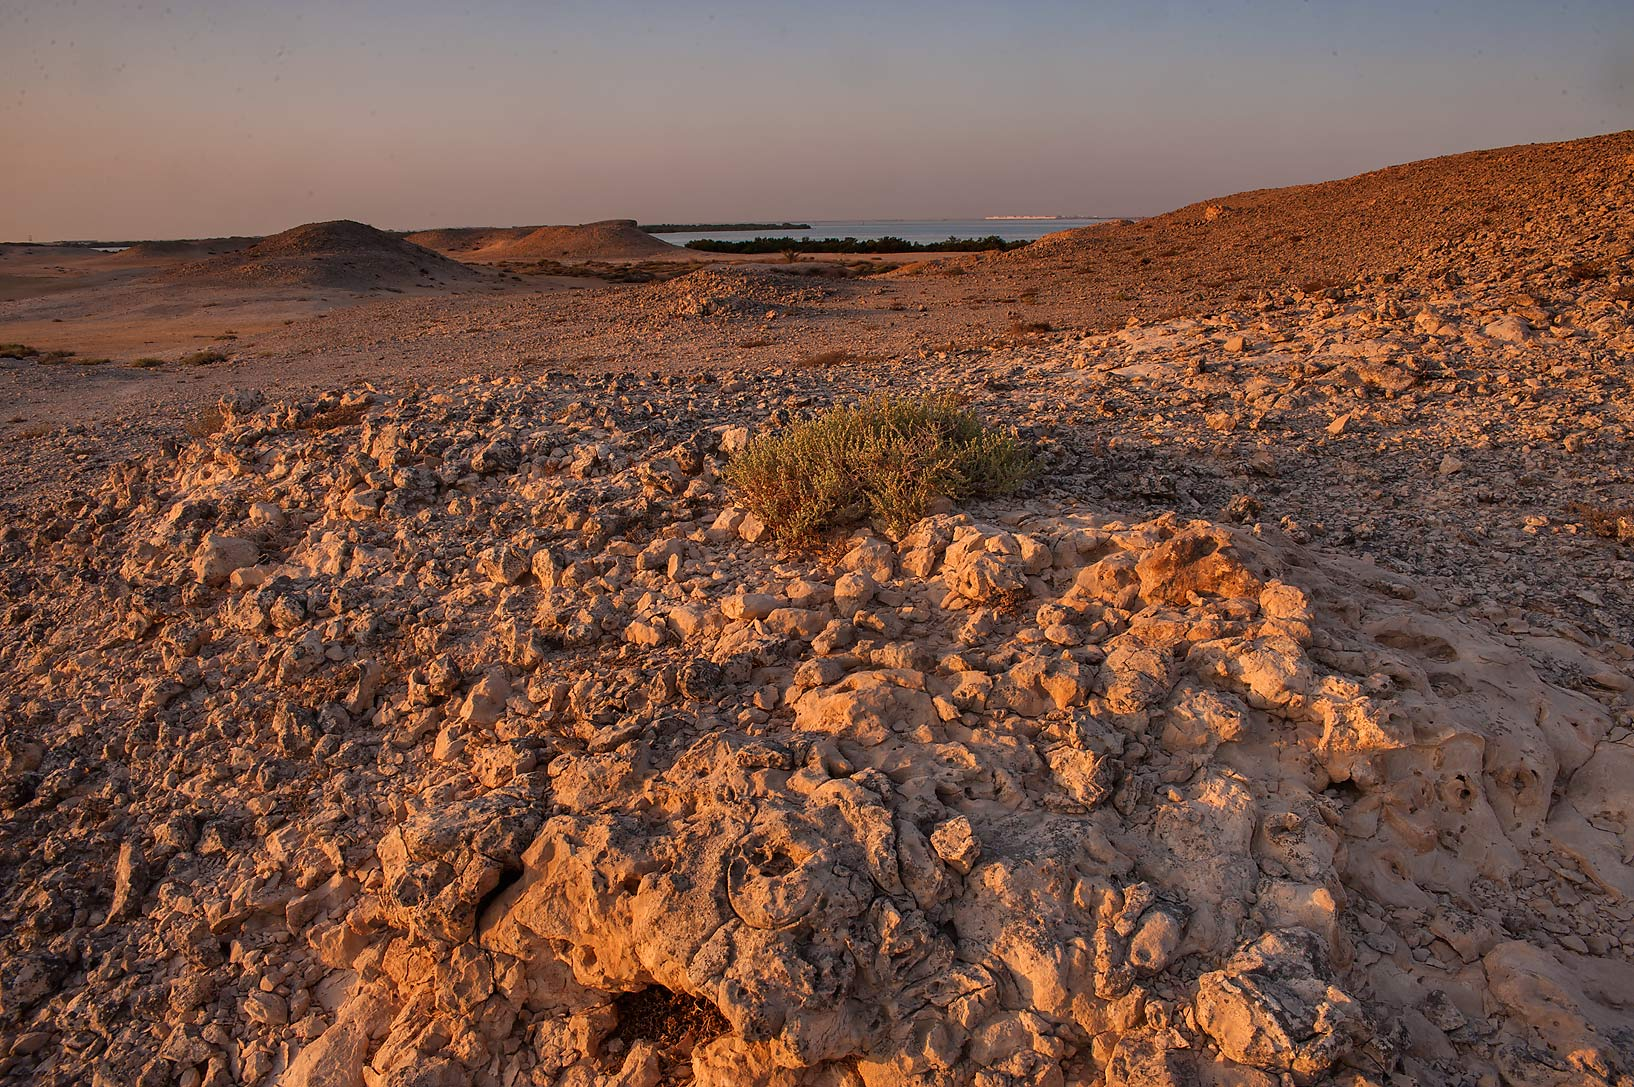 Hill at sunrise in Purple Island (Jazirat Bin Ghanim). Al Khor, Qatar